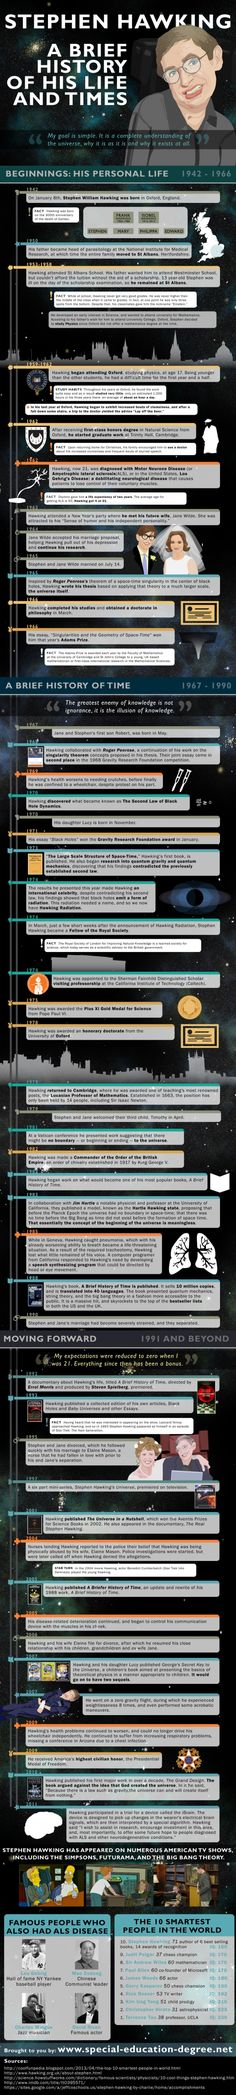 Steven Hawking story | #Infographics repinned by @Piktochart